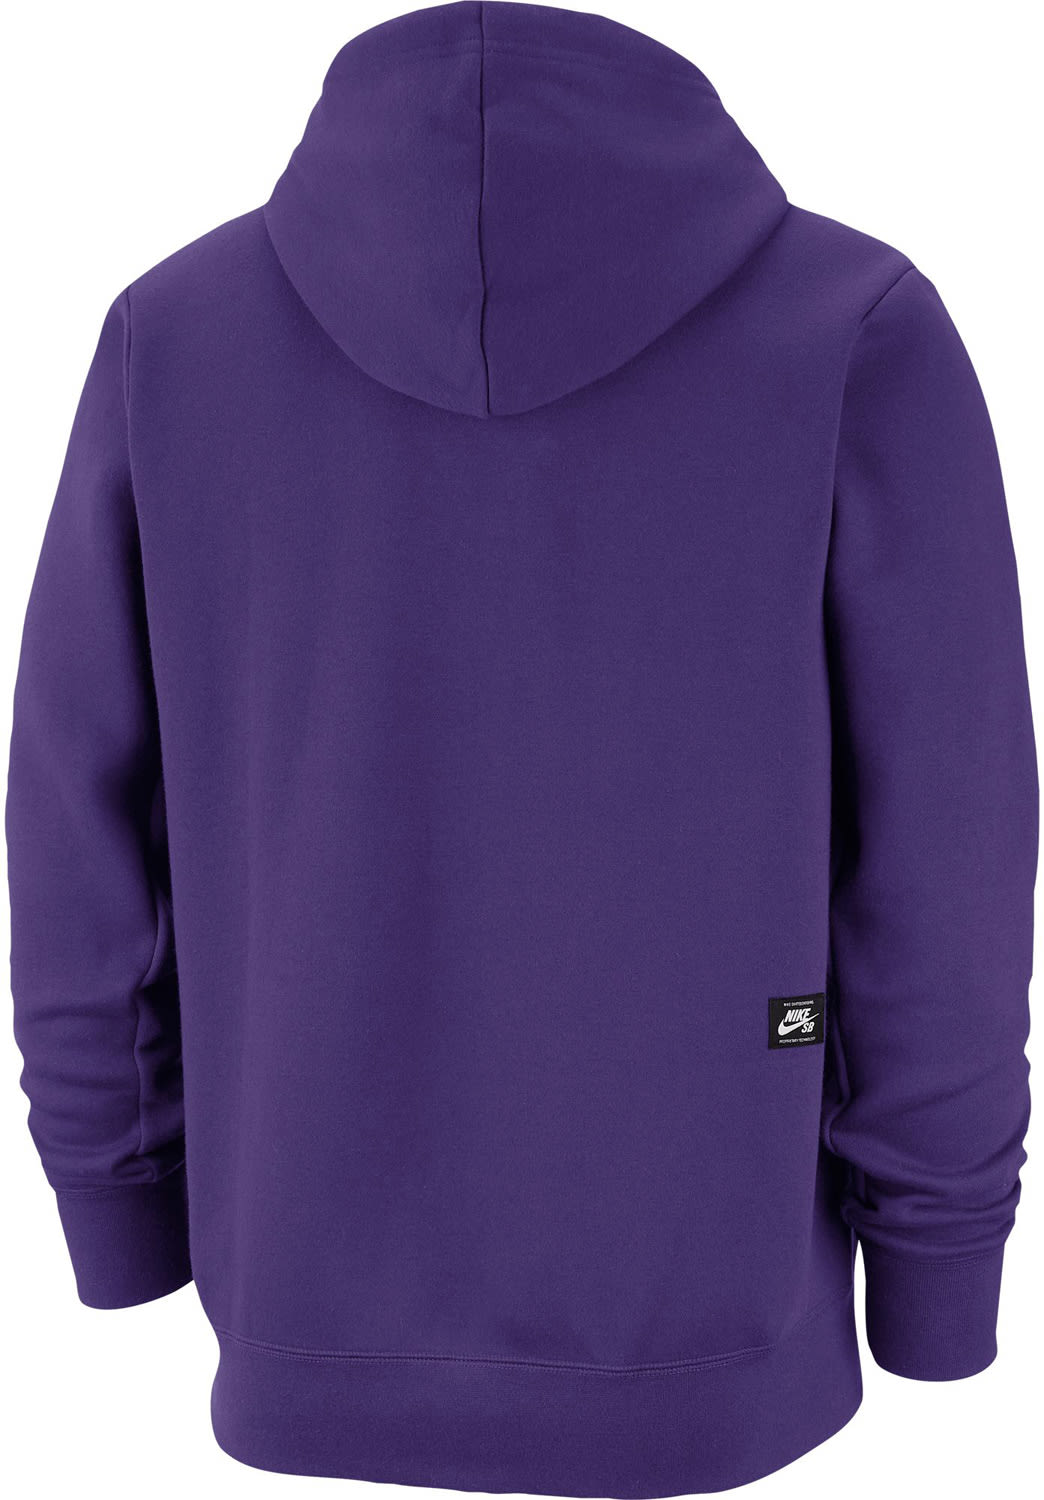 NEW-The North Face-Men/'s Tekno Hoodie-Freeride-Choice of XL or XXL